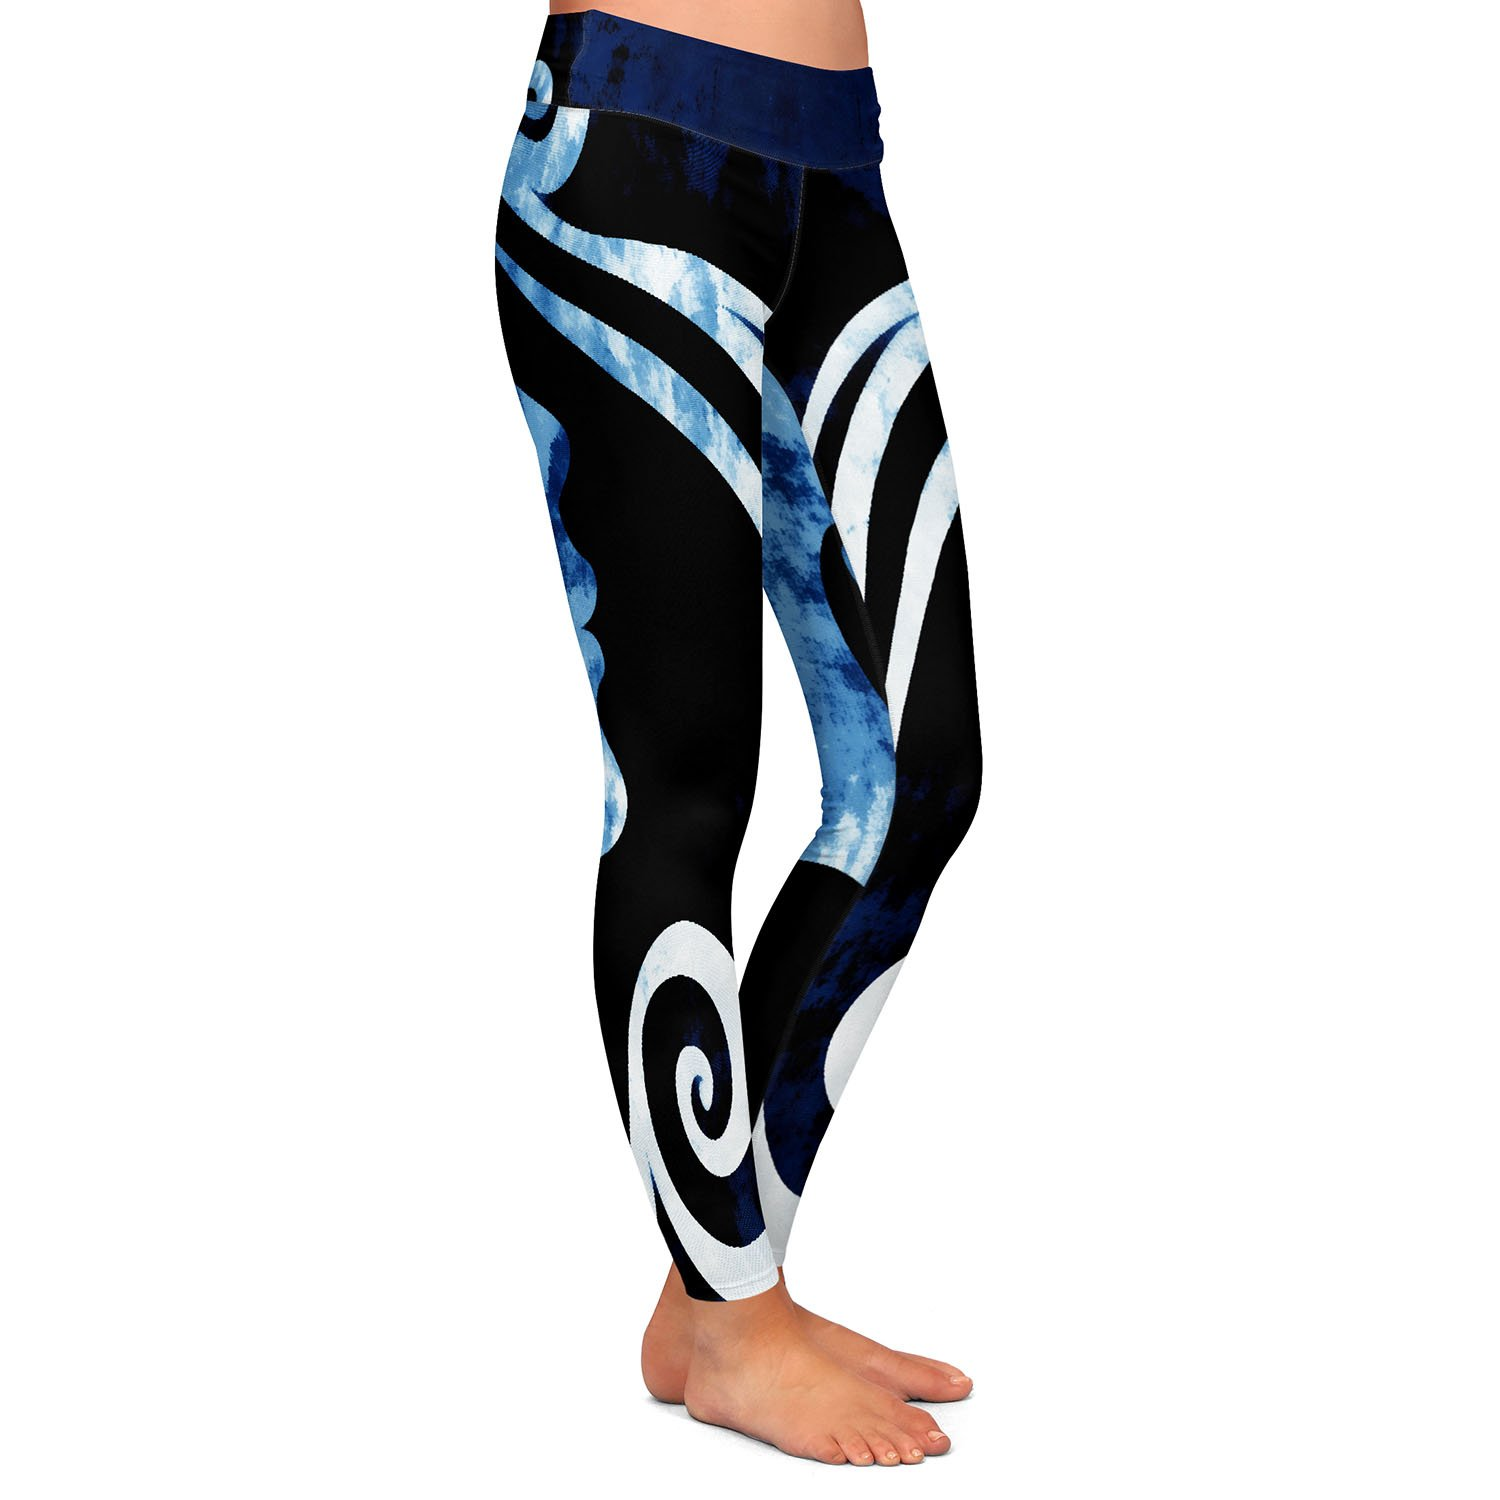 Wait for You Blue Athletic Yoga Leggings from DiaNoche Designs by Angelina Vick